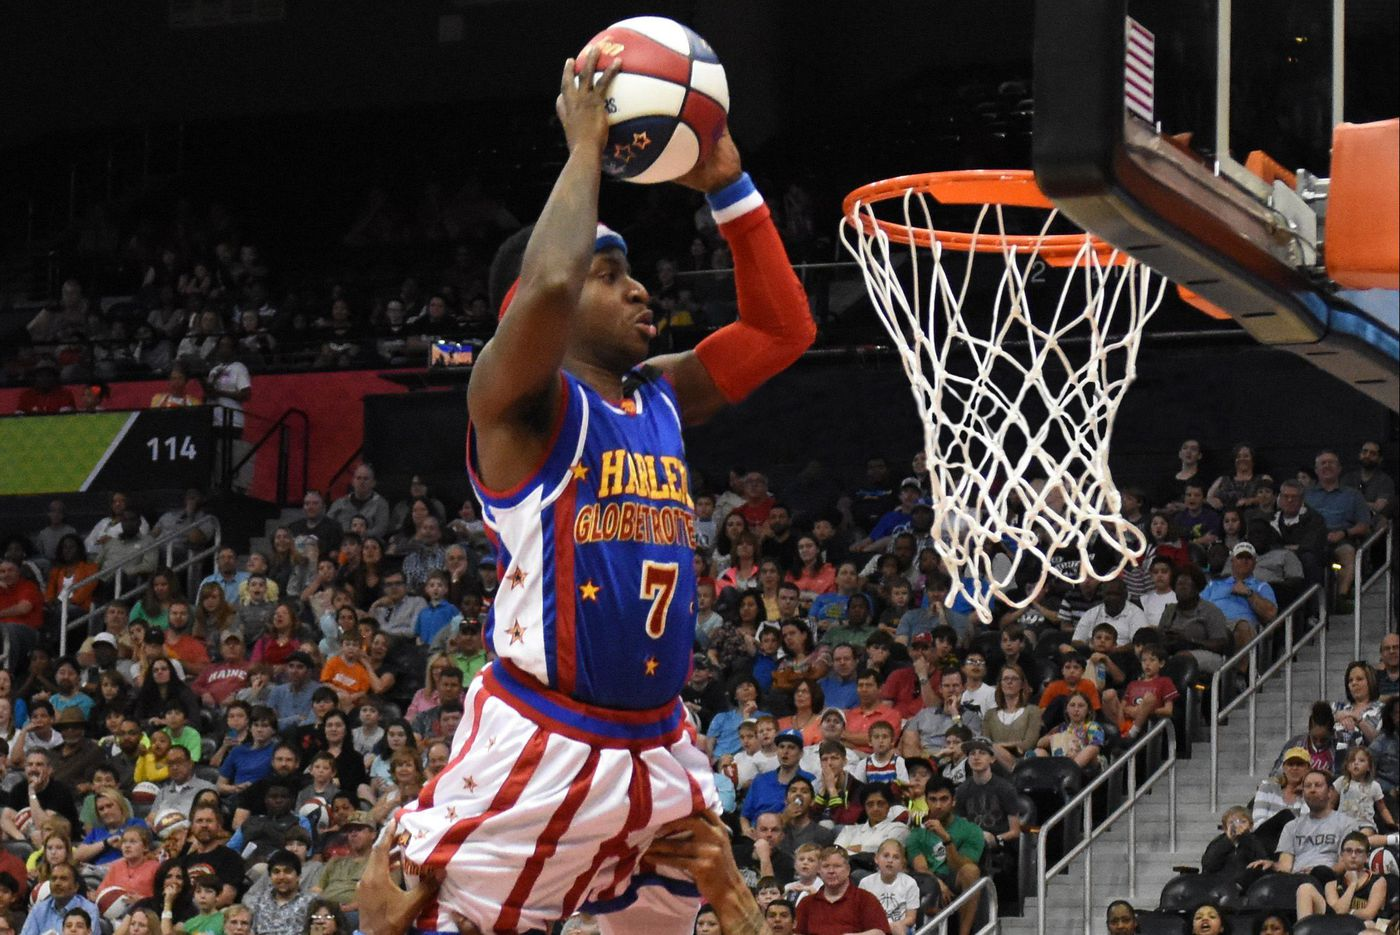 Harlem Globetrotters, tattoo beach bash, boat parade, and more things to do down the Shore